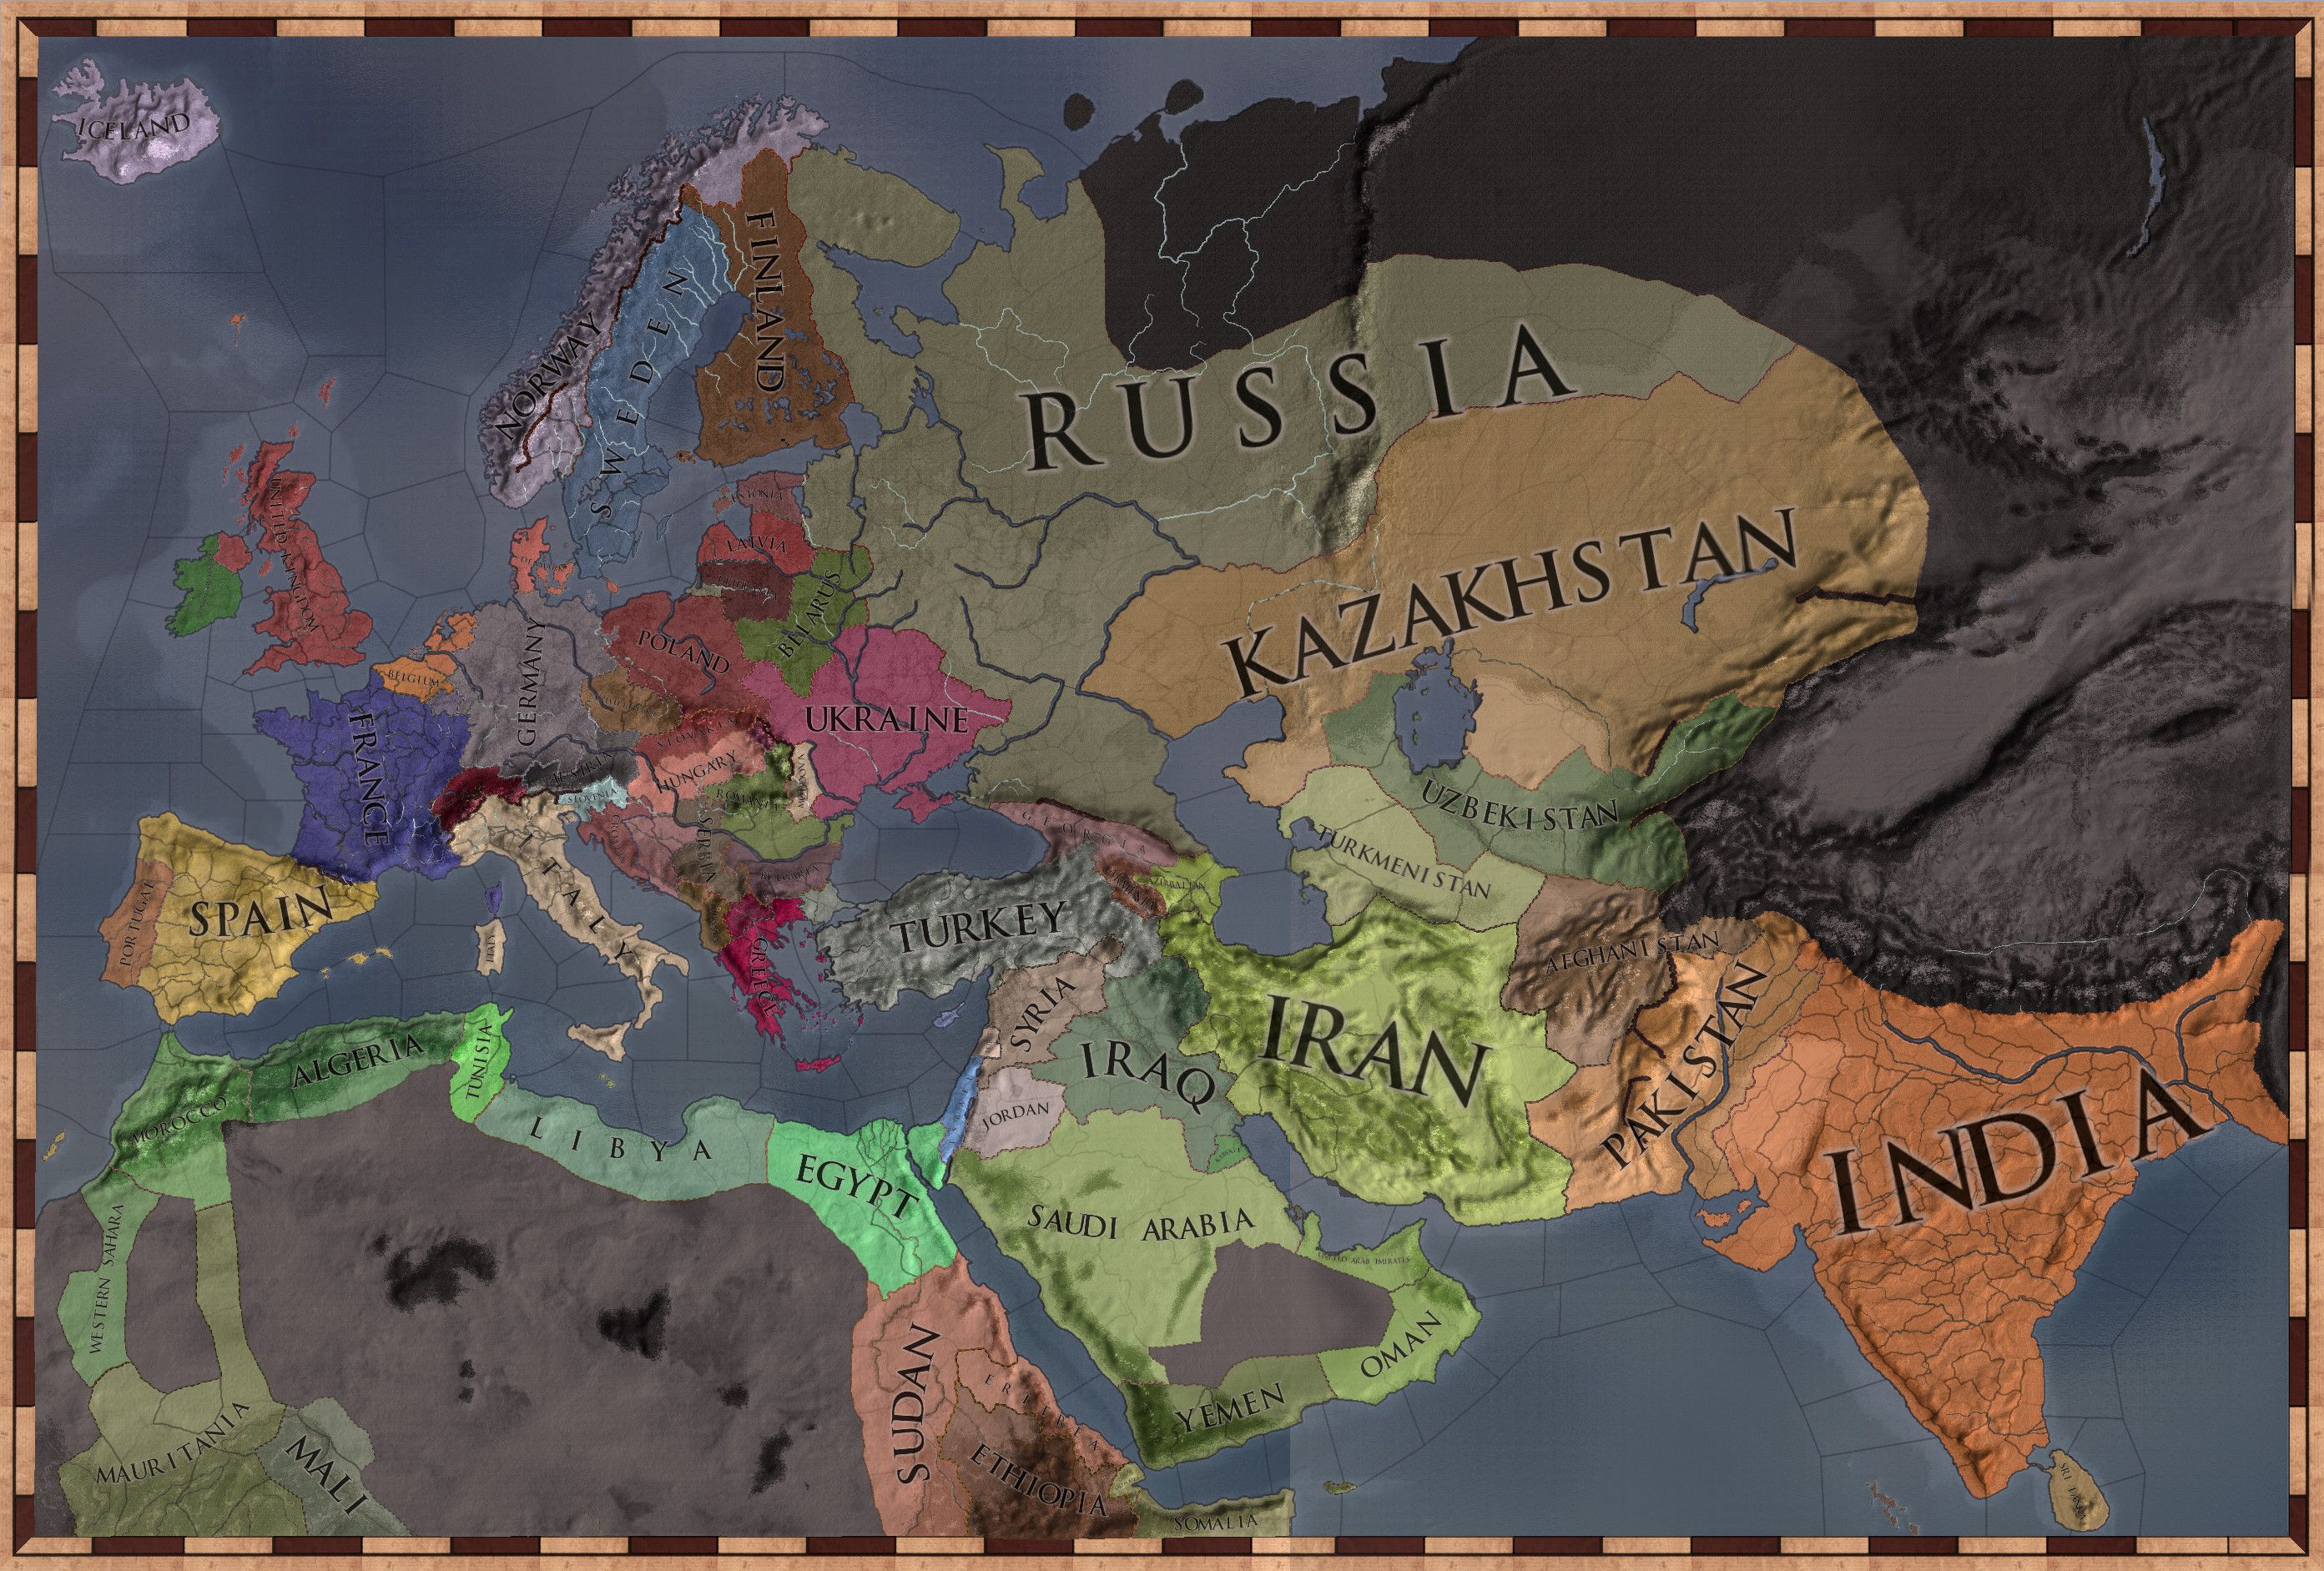 CK2 Today | Maps | Perm, Art, Painting